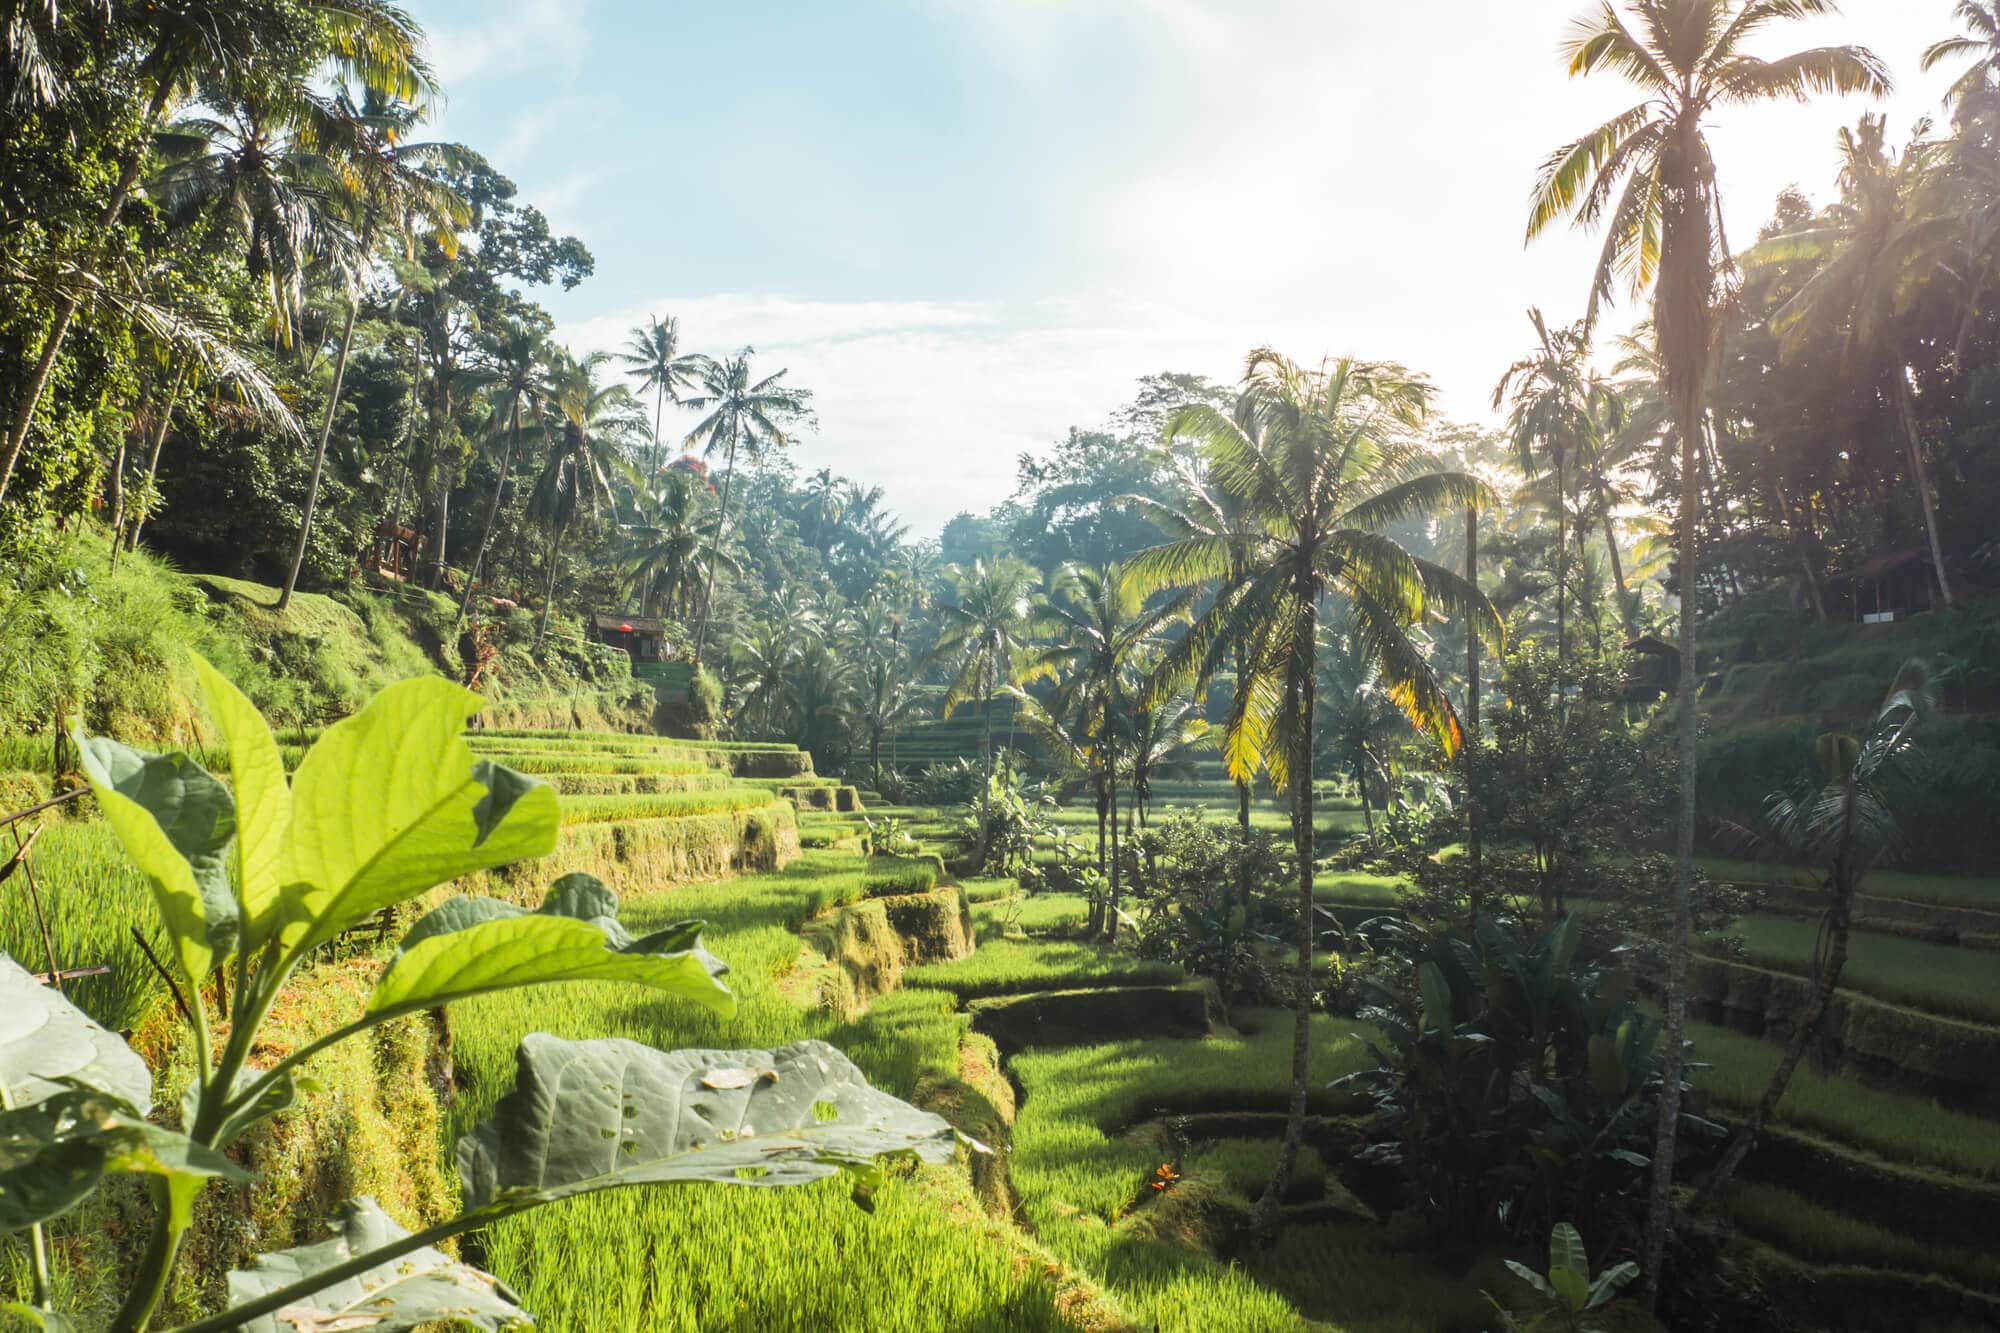 Where to stay in Bali: A complete guide to the different areas on the island - Sunrise at Tegalalang Rice Terrace in Ubud